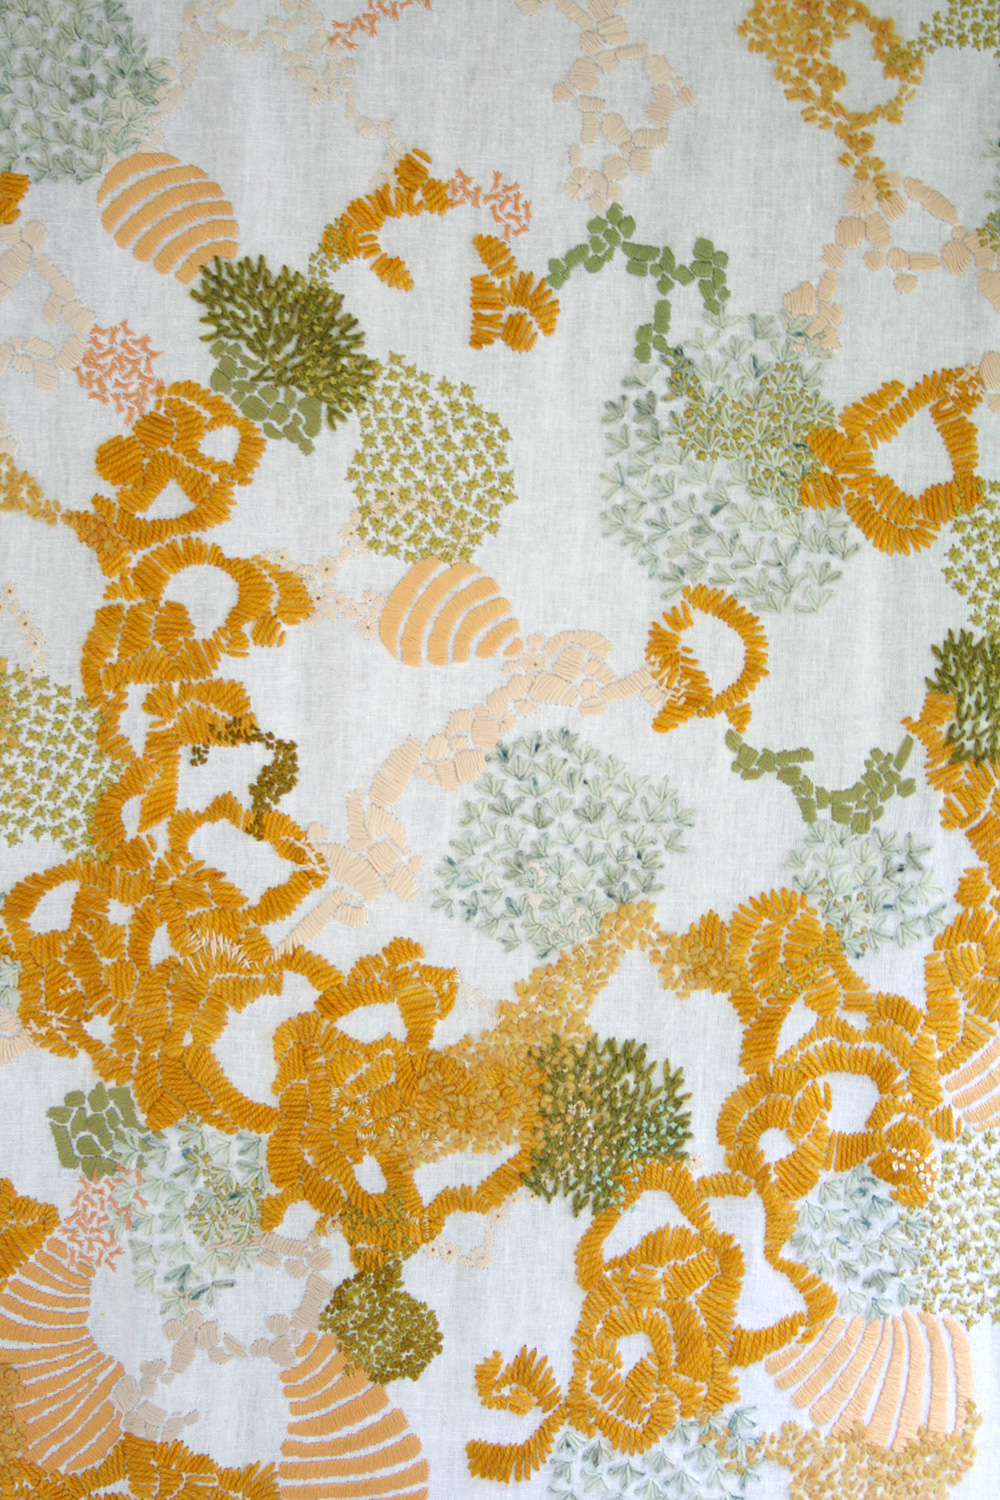 Gold, Grass and Peach Embroidered Tapestry